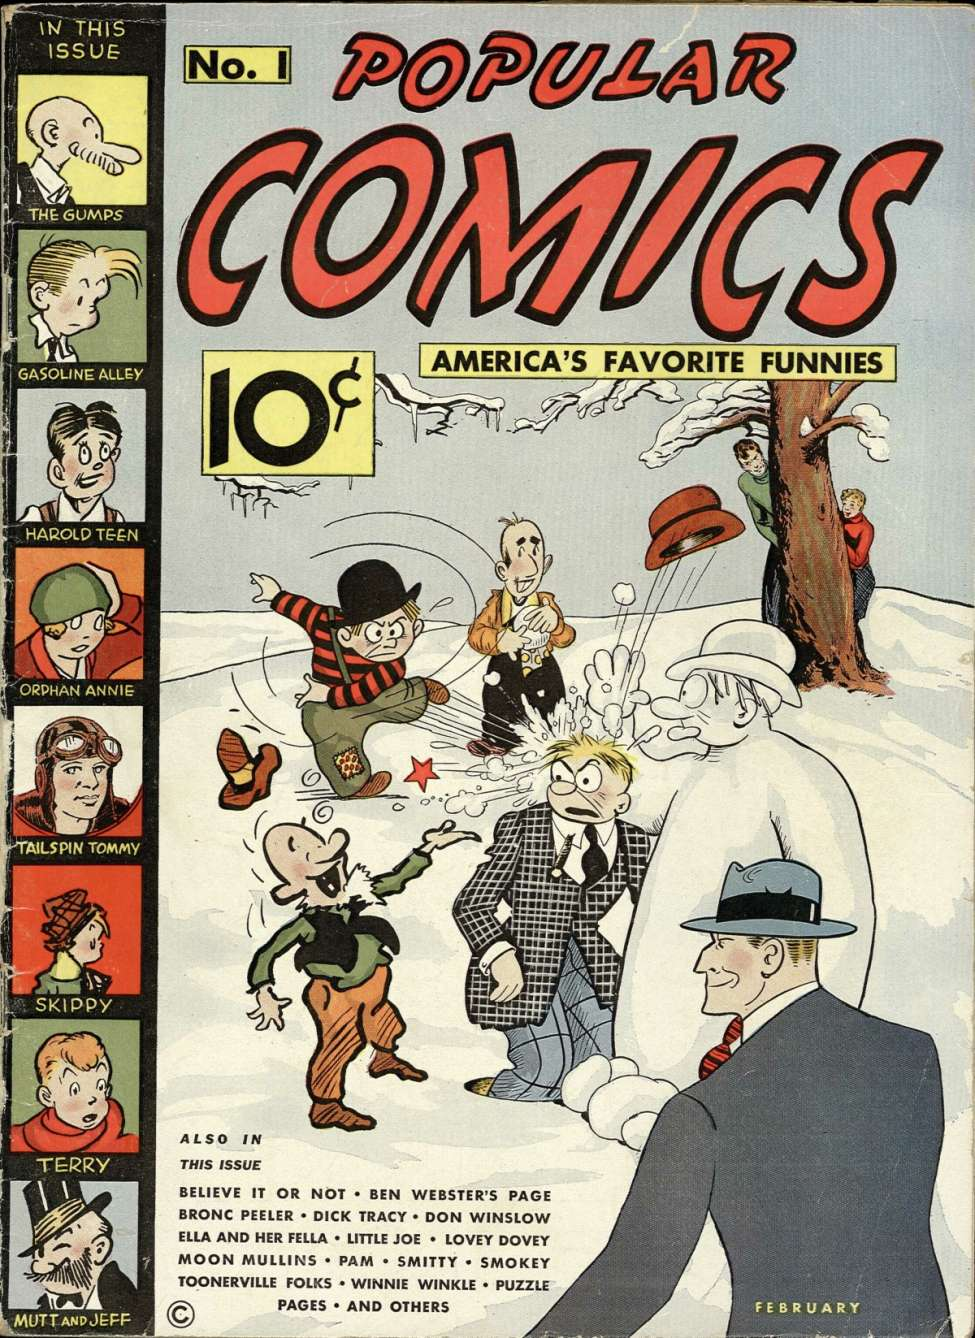 Comic Book Cover For Popular Comics #1